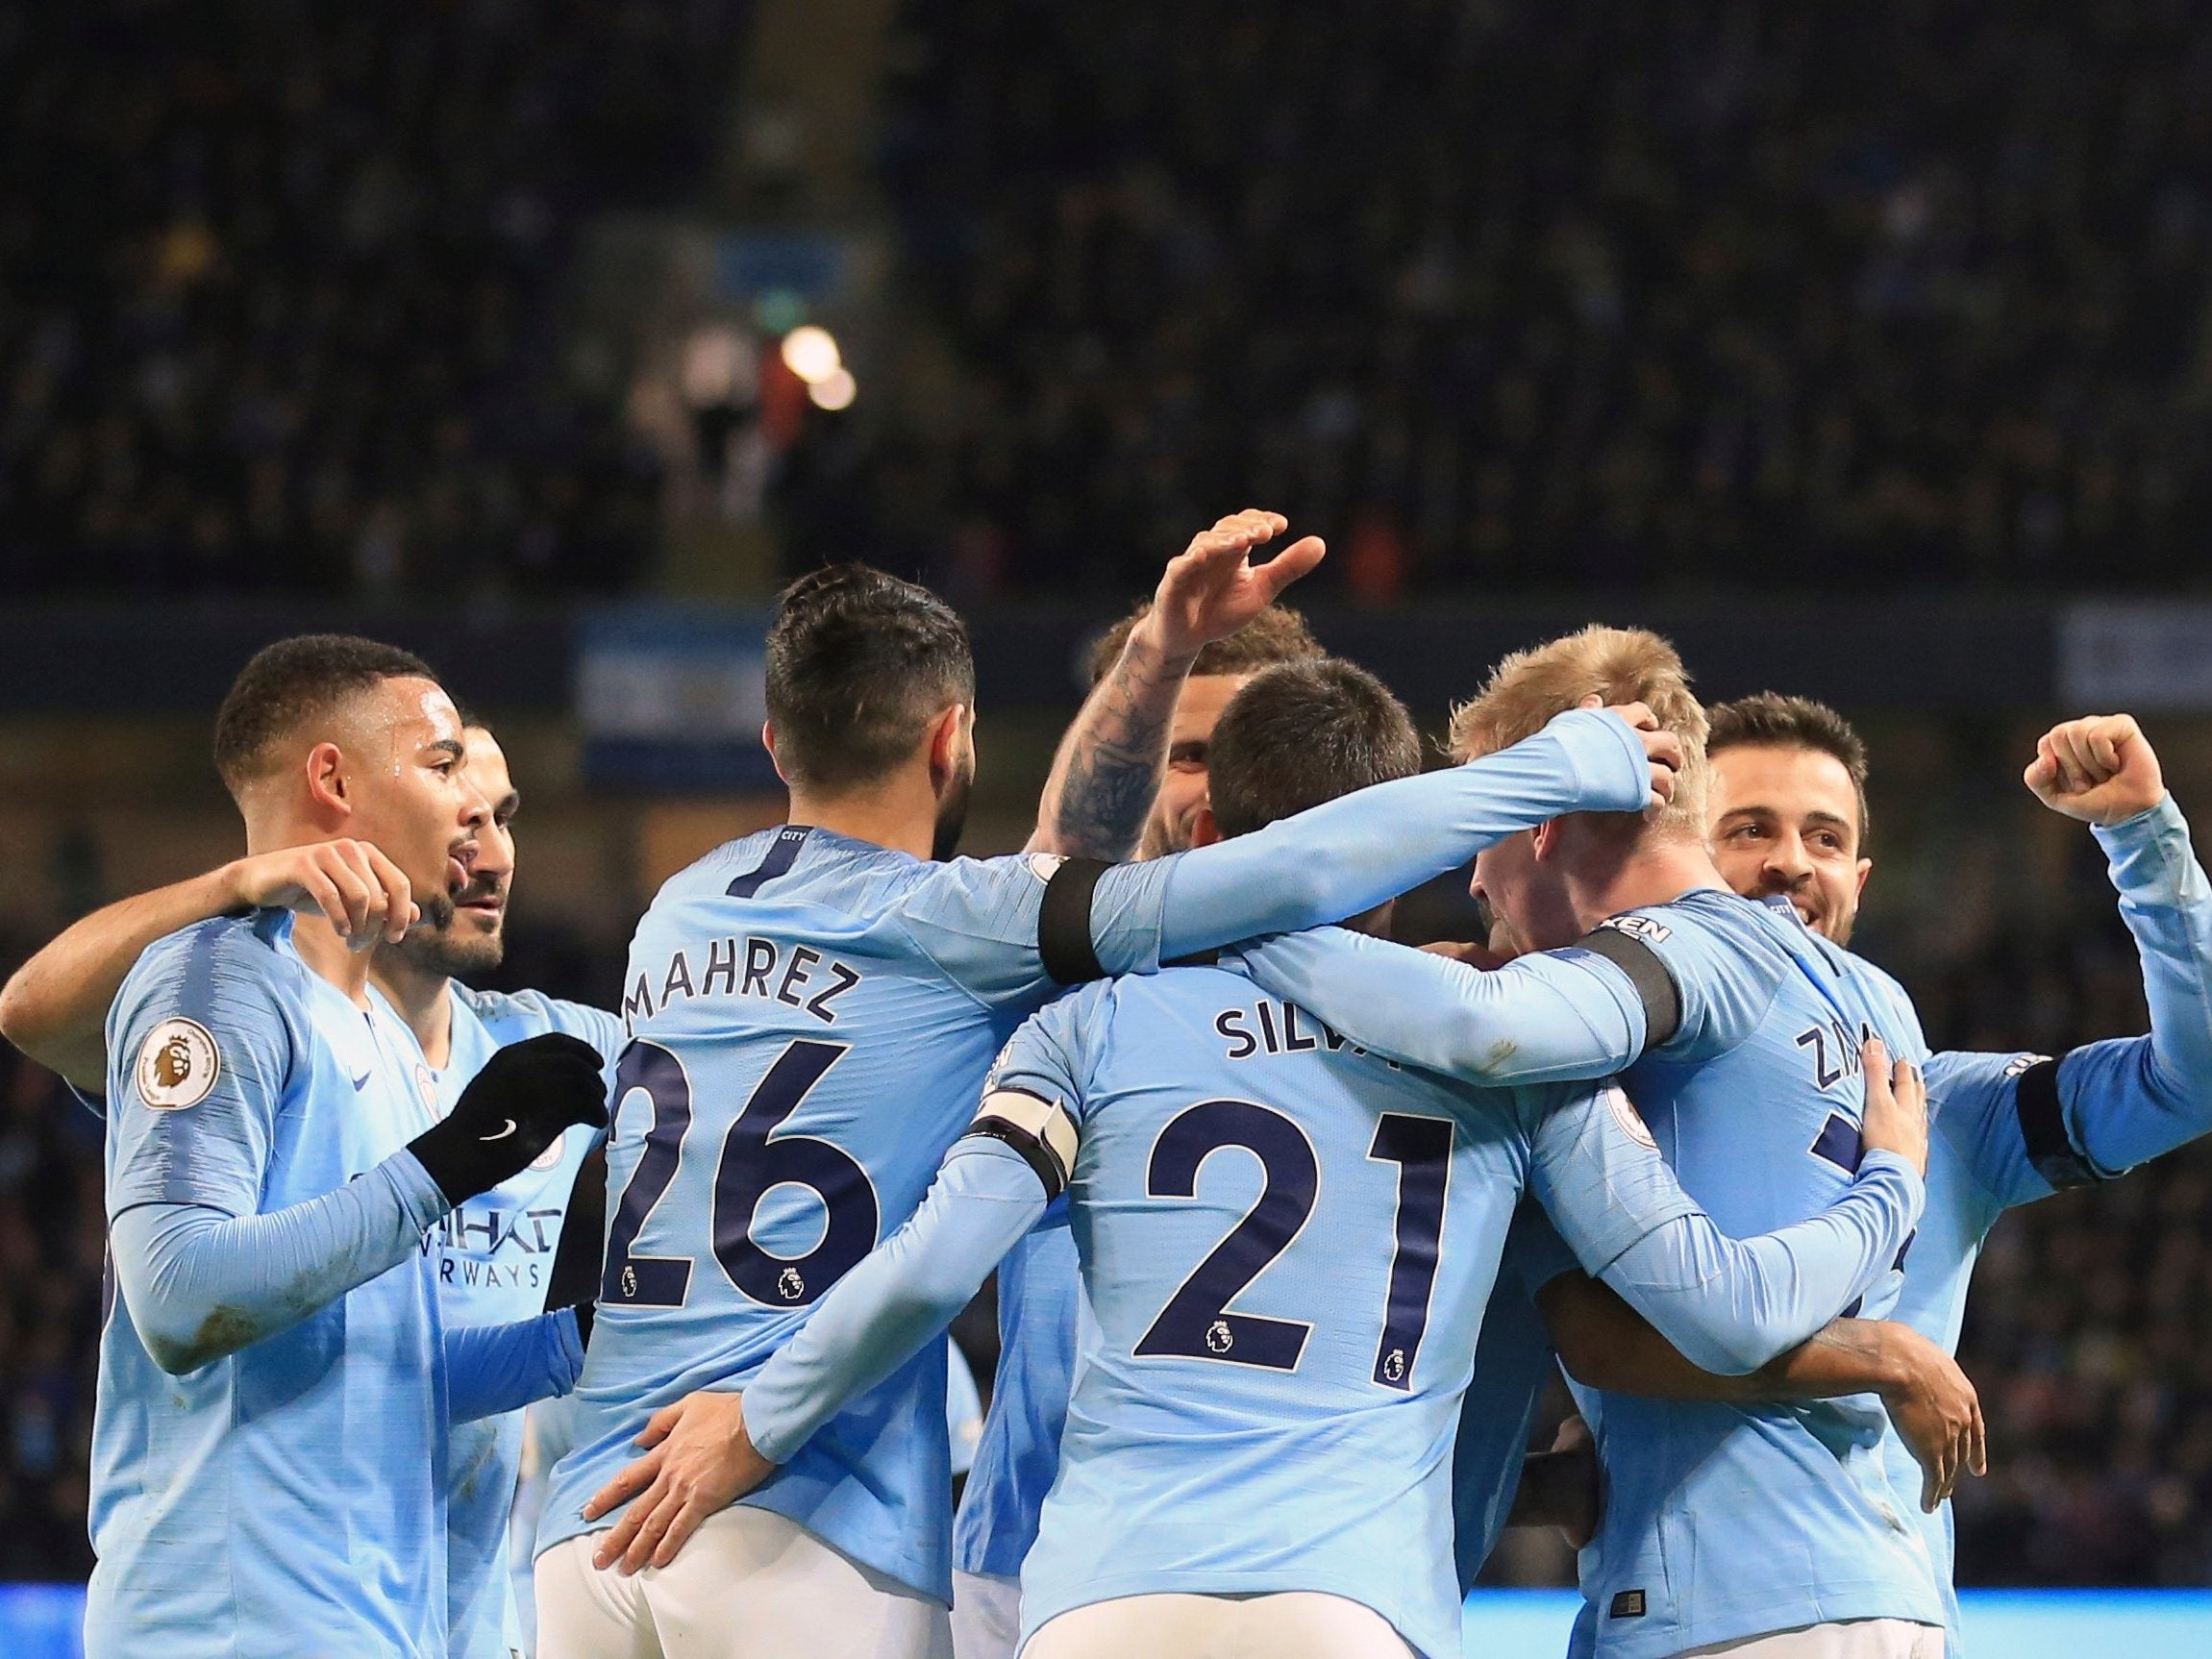 Manchester City Vs Chelsea Melhores Momentos: Man City Vs Chelsea Result: Champions Hit New Heights As